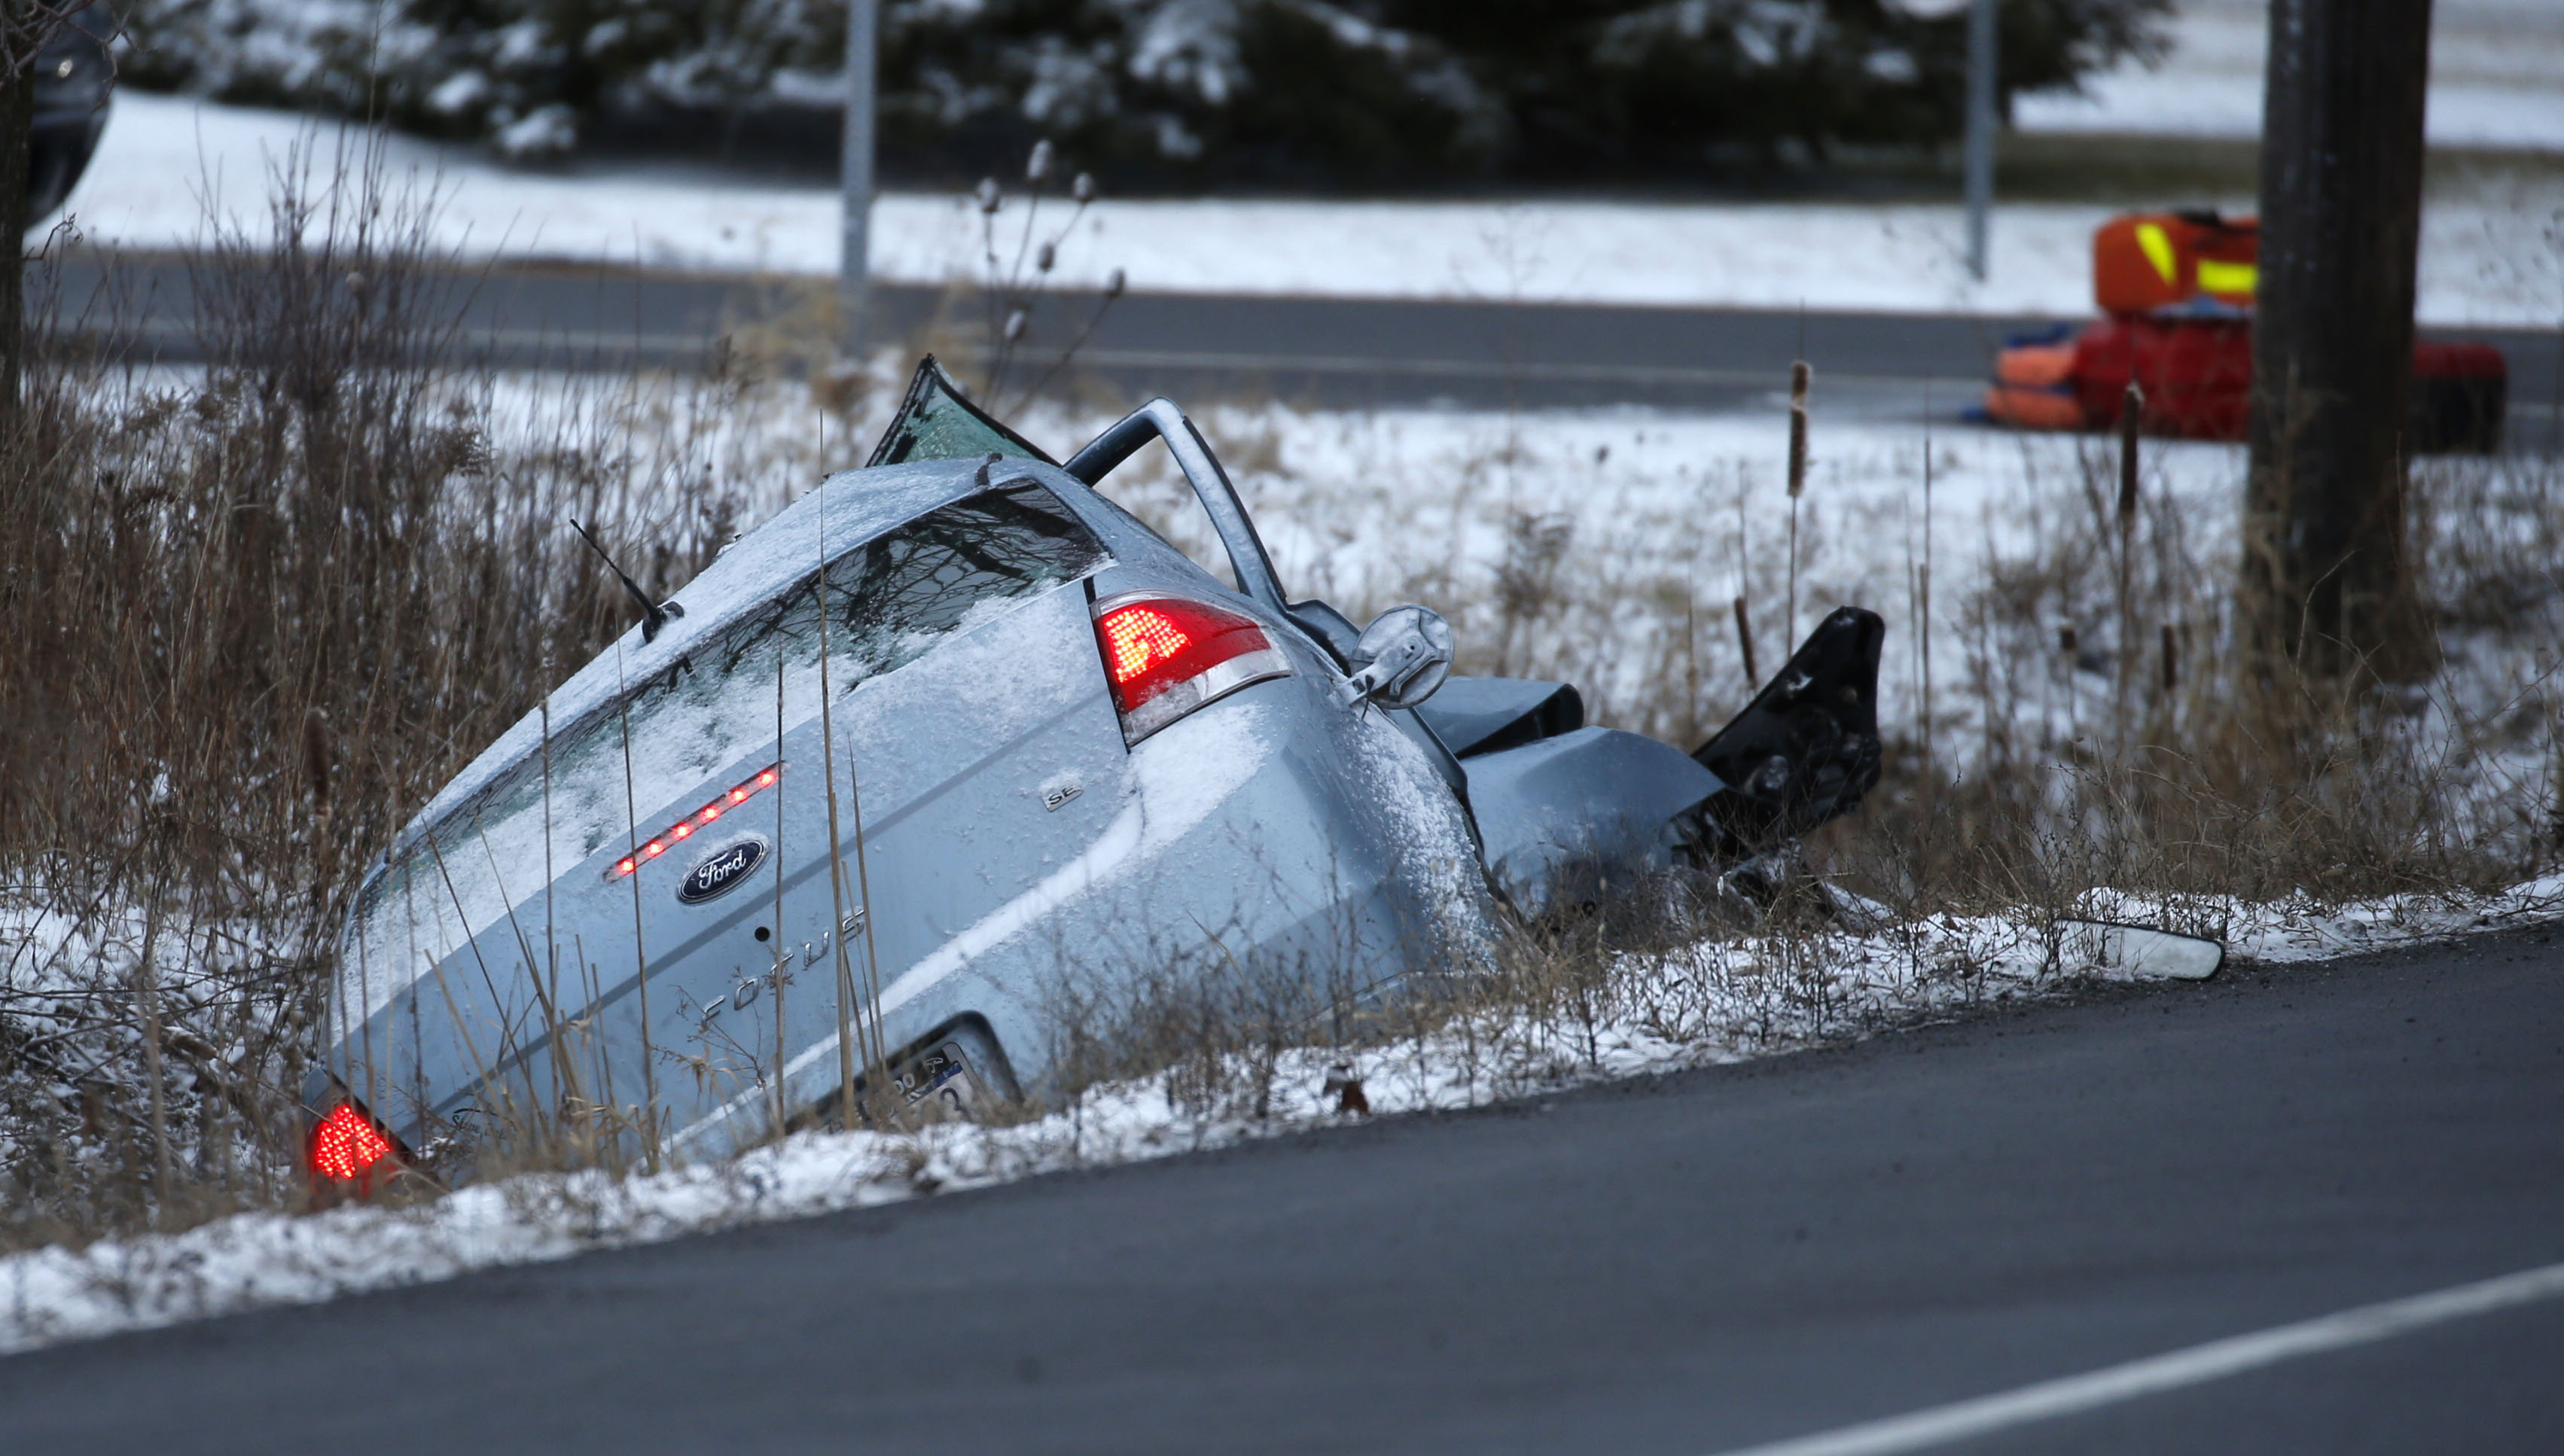 This car was traveling north on Hoover Road in Sanborn when it collided with a automobile transport truck that was traveling west on Lockport Road on  Wednesday, Feb. 15, 2017.  The lone passenger in the car was killed.  (Robert Kirkham/Buffalo News)